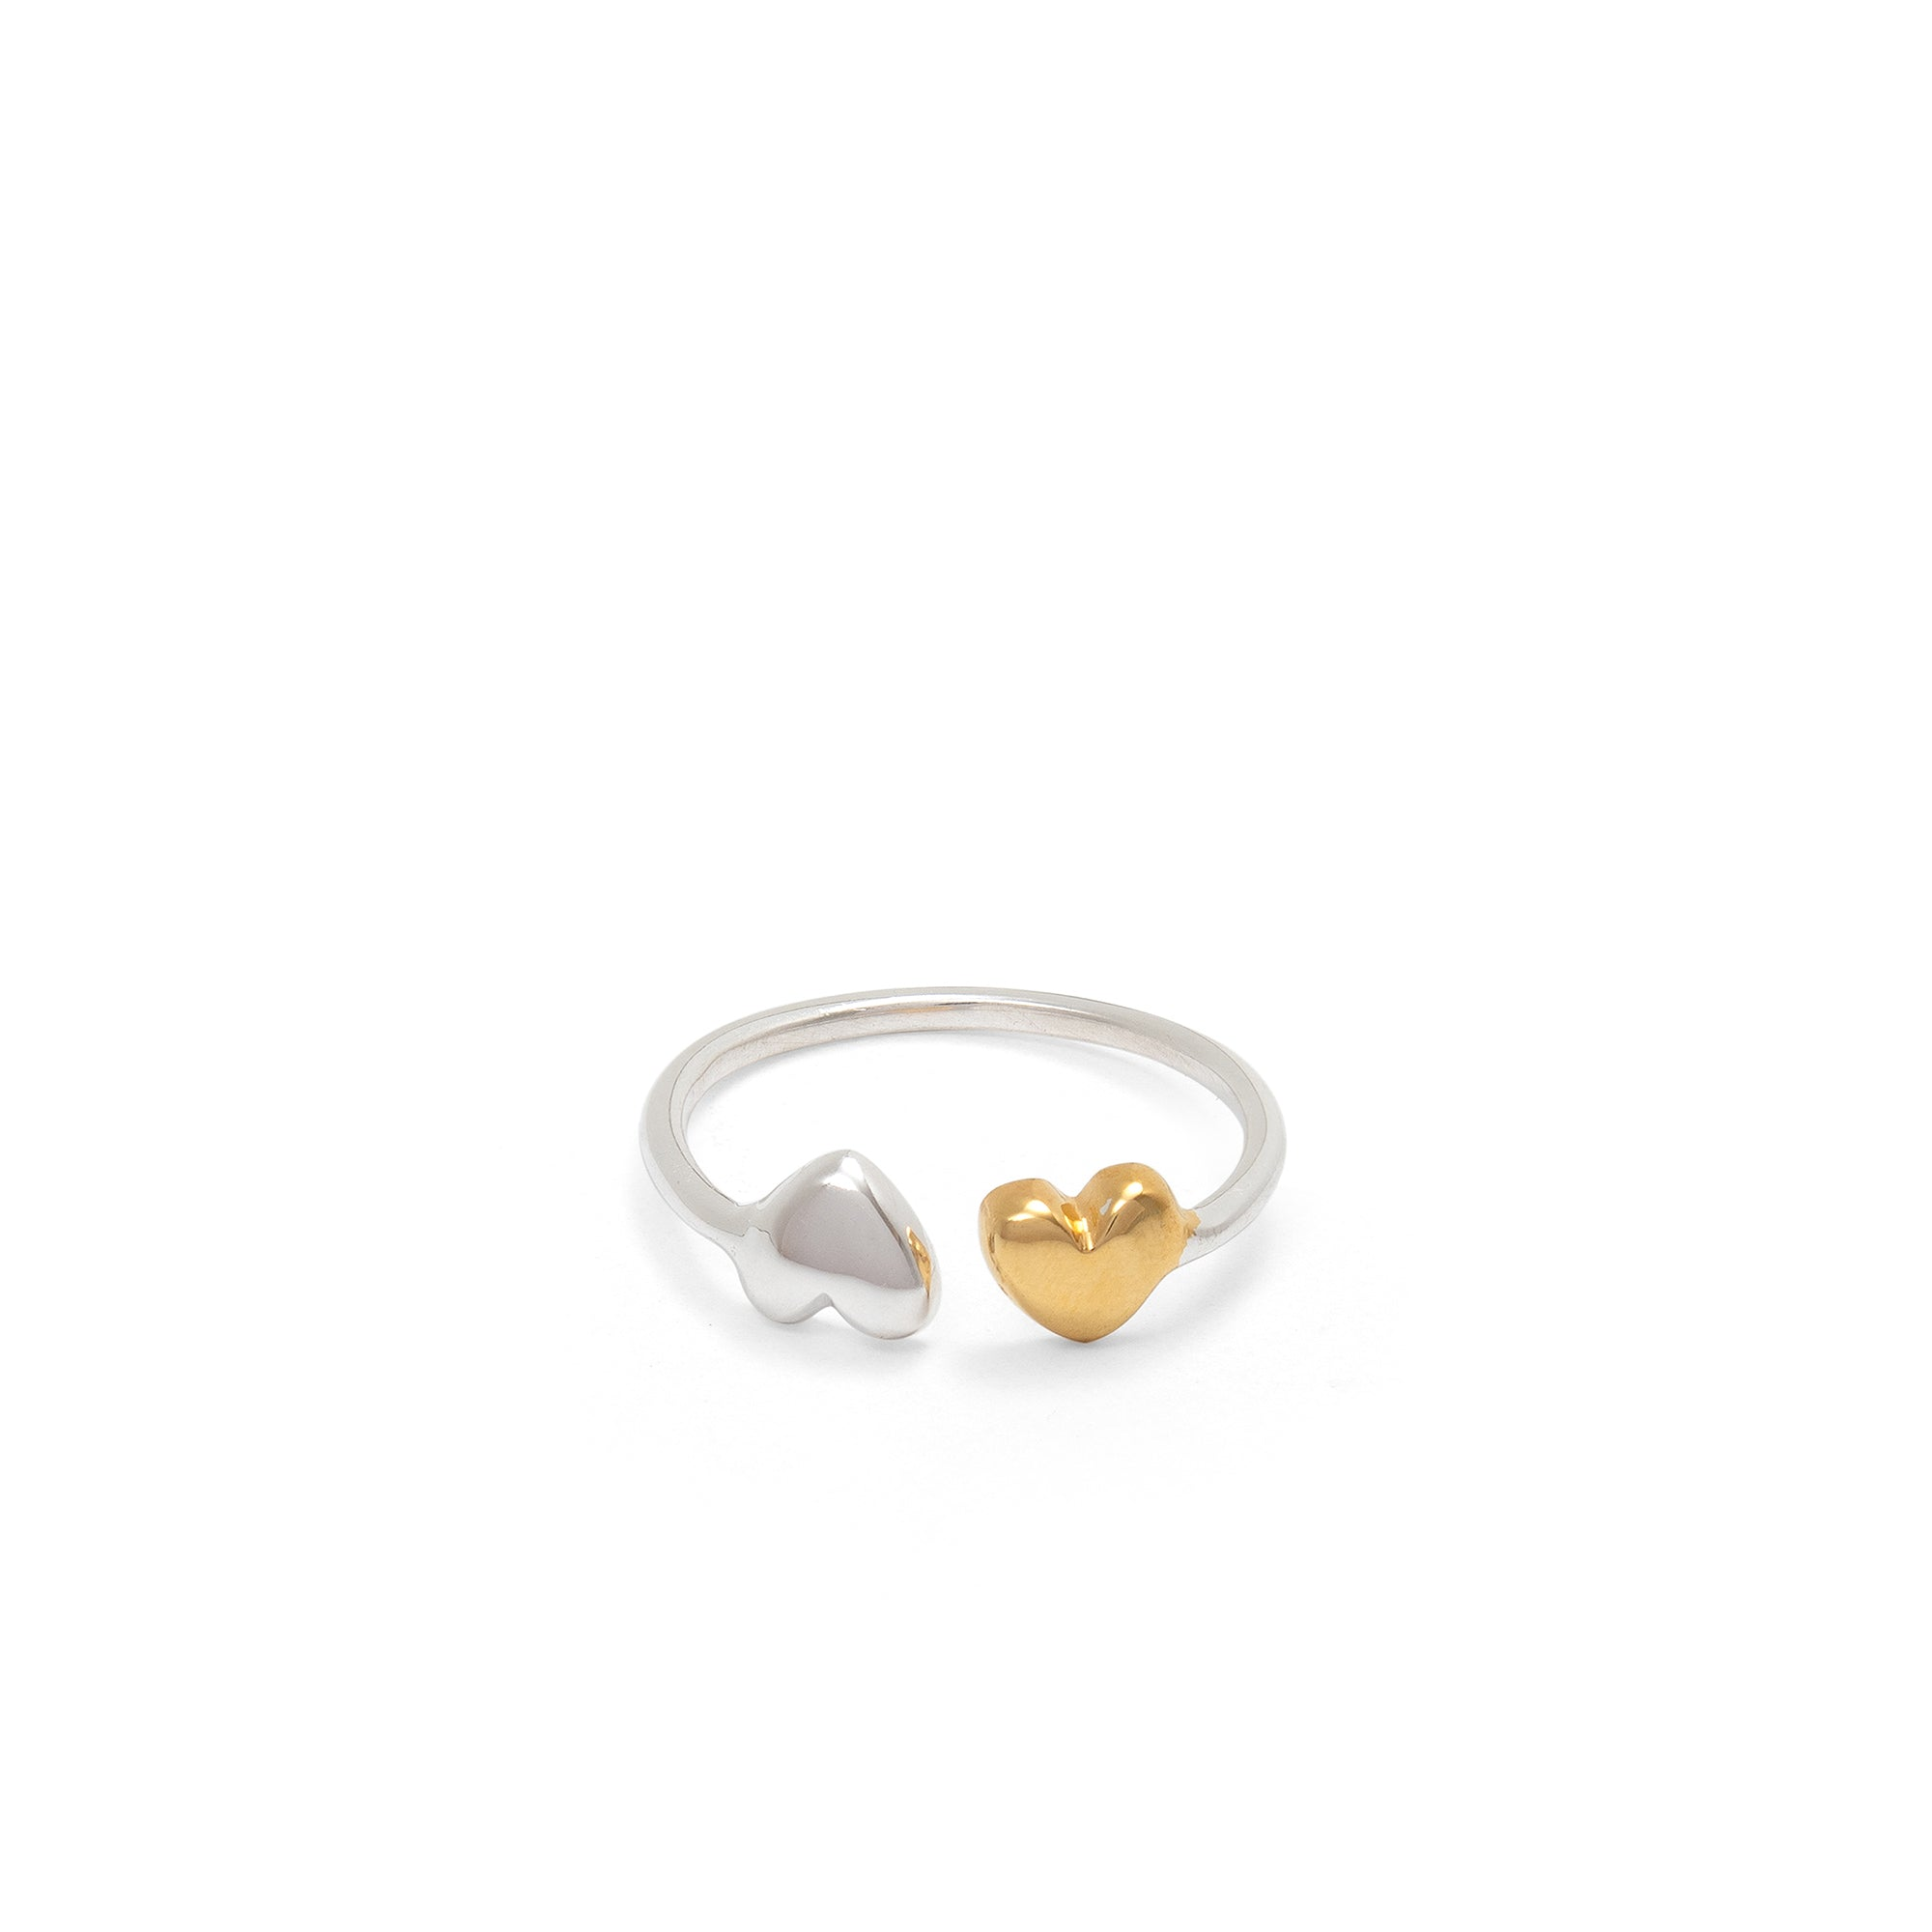 Adjustable Double Heart Charm Ring Sterling Silver and Gold Vermeil